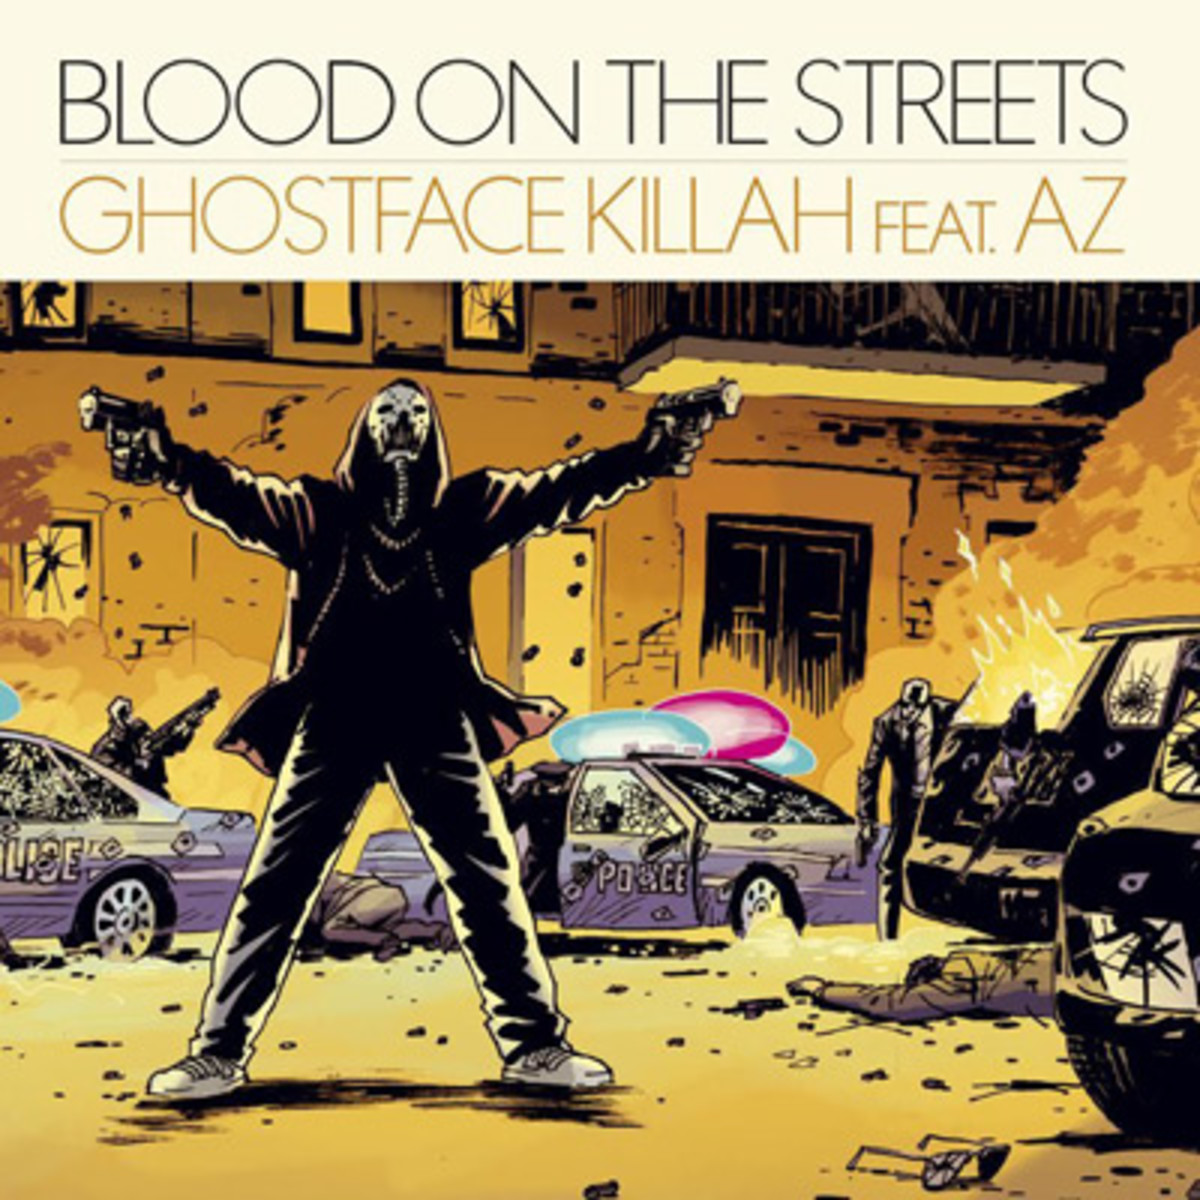 ghostface-bloodonstreets.jpg